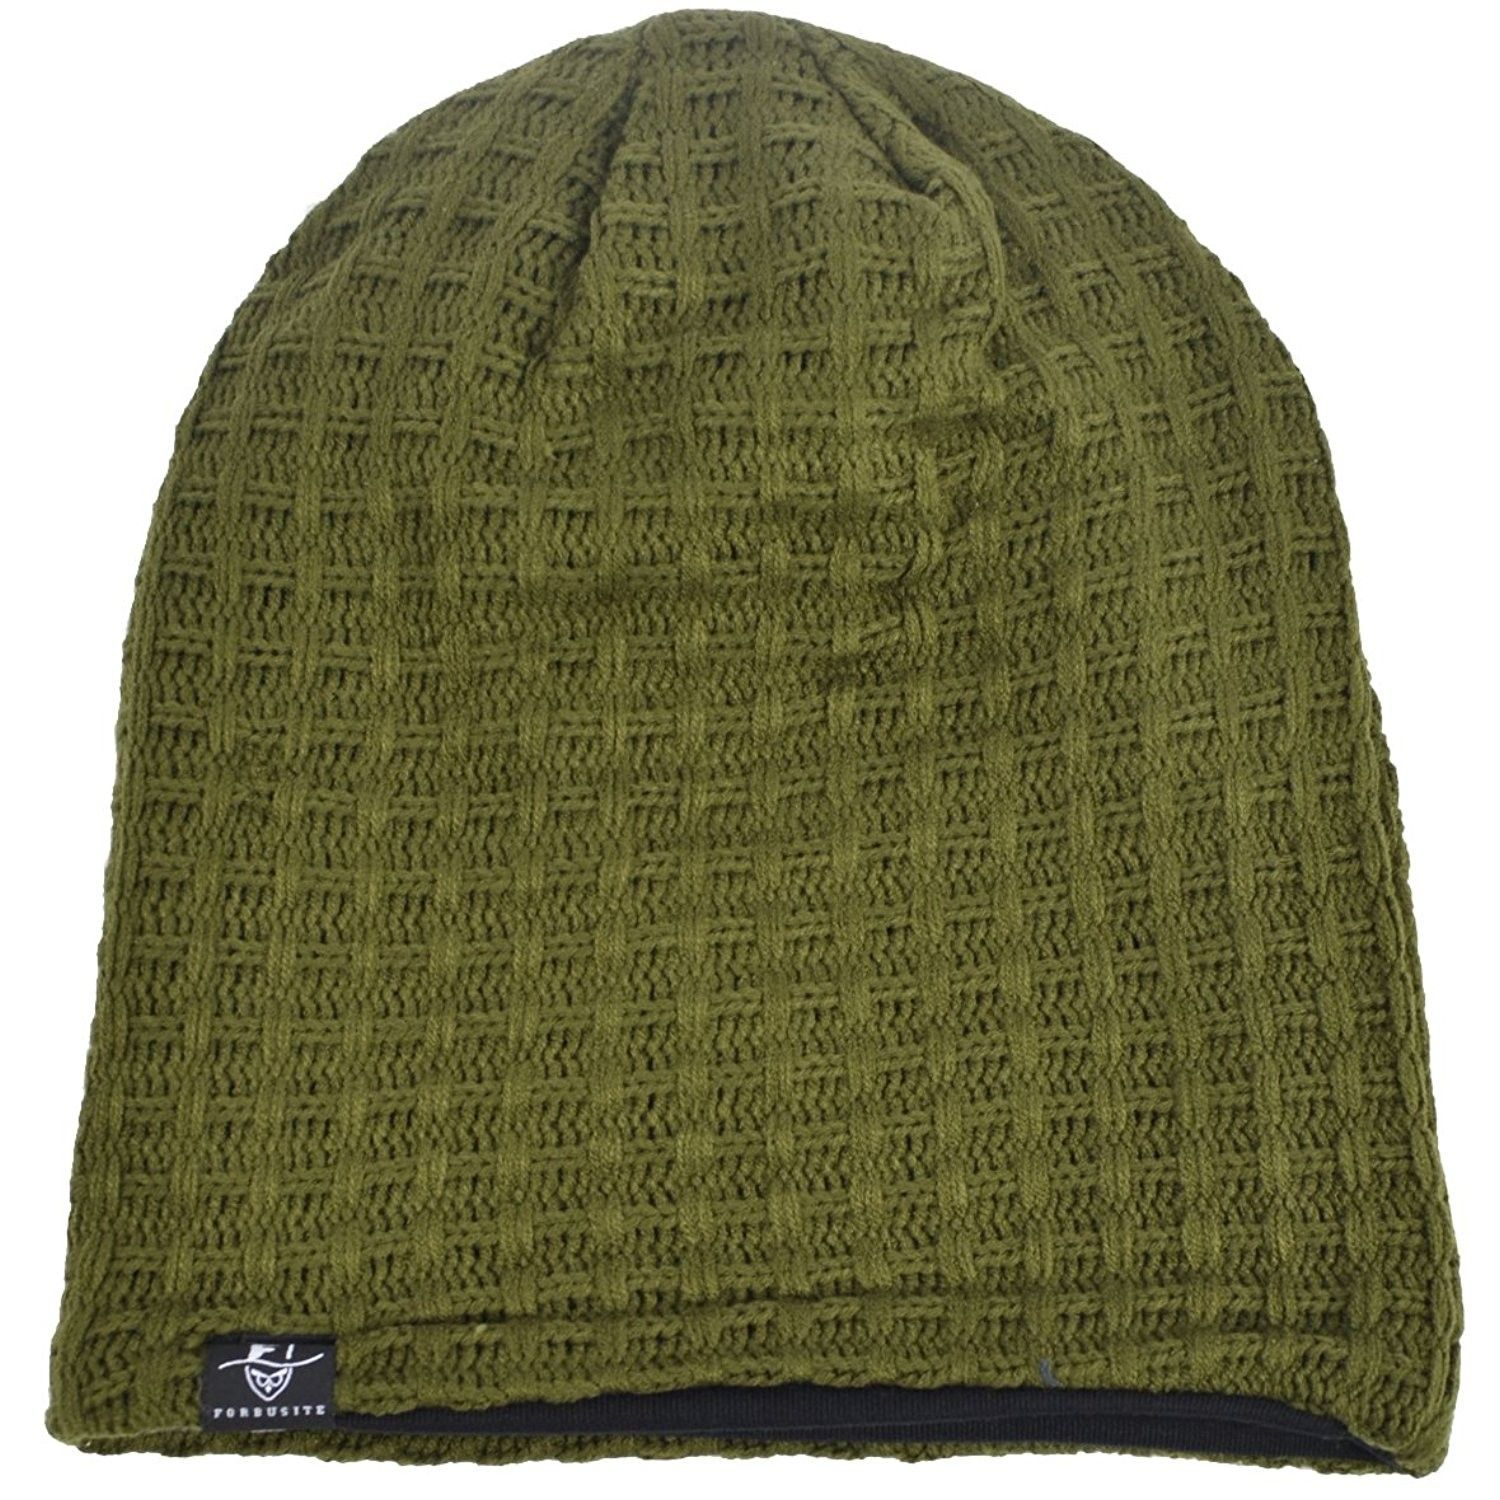 b38179b28e4 Men s Slouchy Beanie Oversize Summer Winter Skull Cap Hat B305 -  Plaid-green - CL187O5HNGW - Hats   Caps